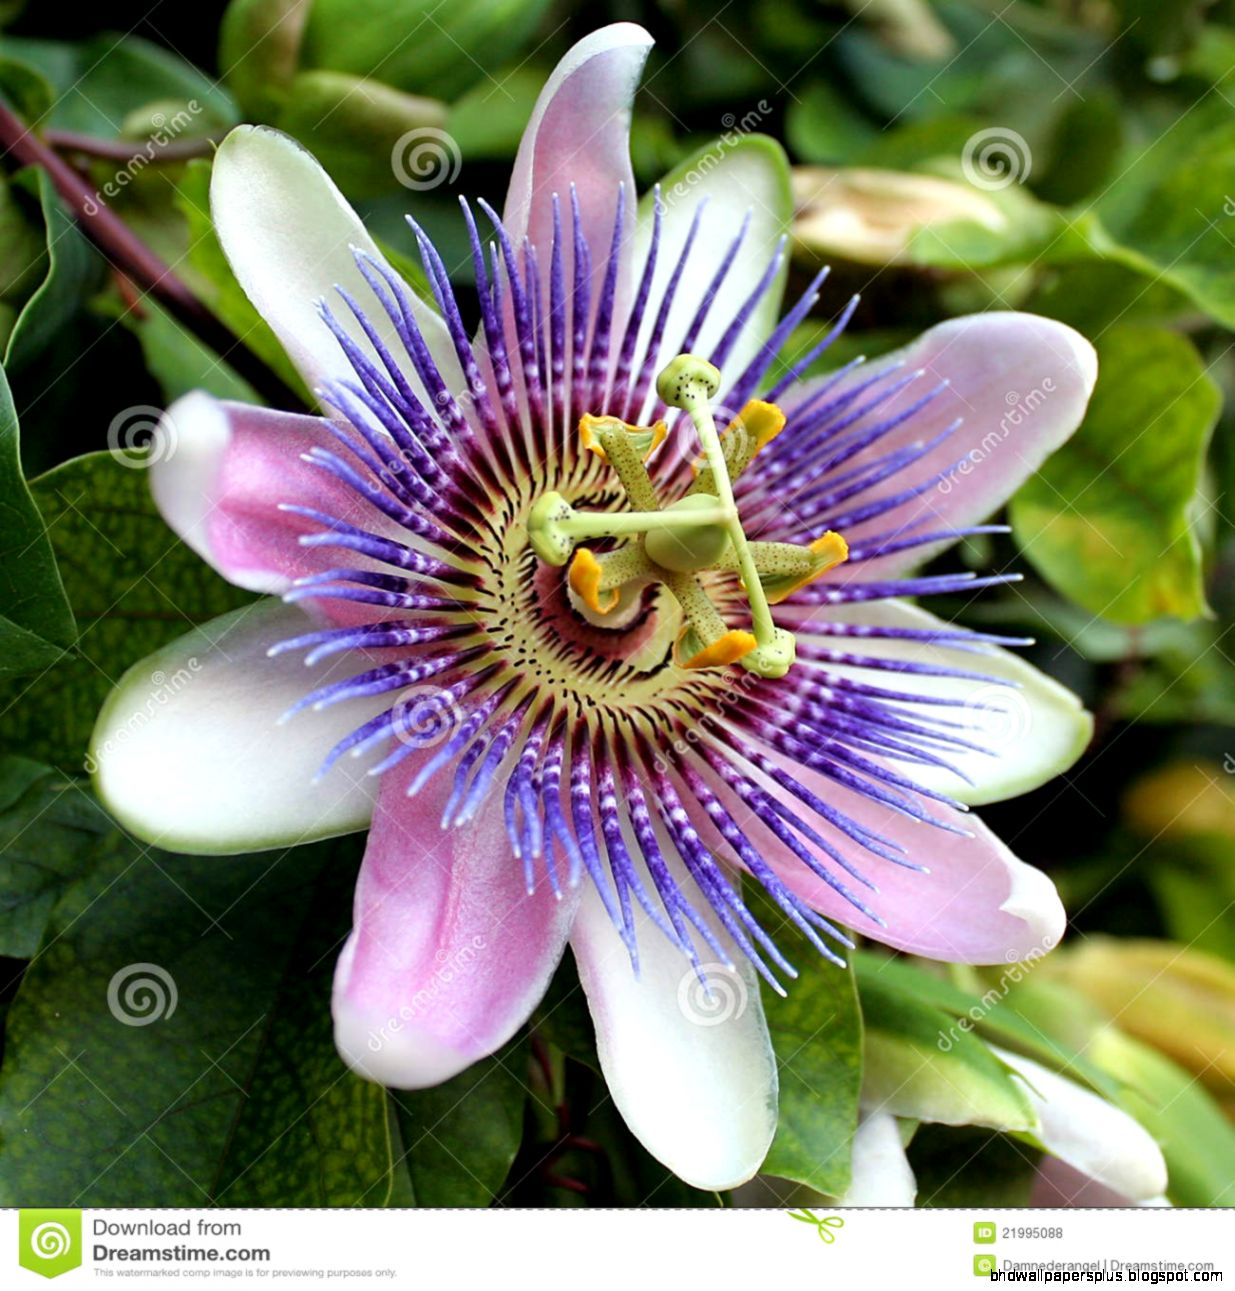 FunMozar – Passion flower